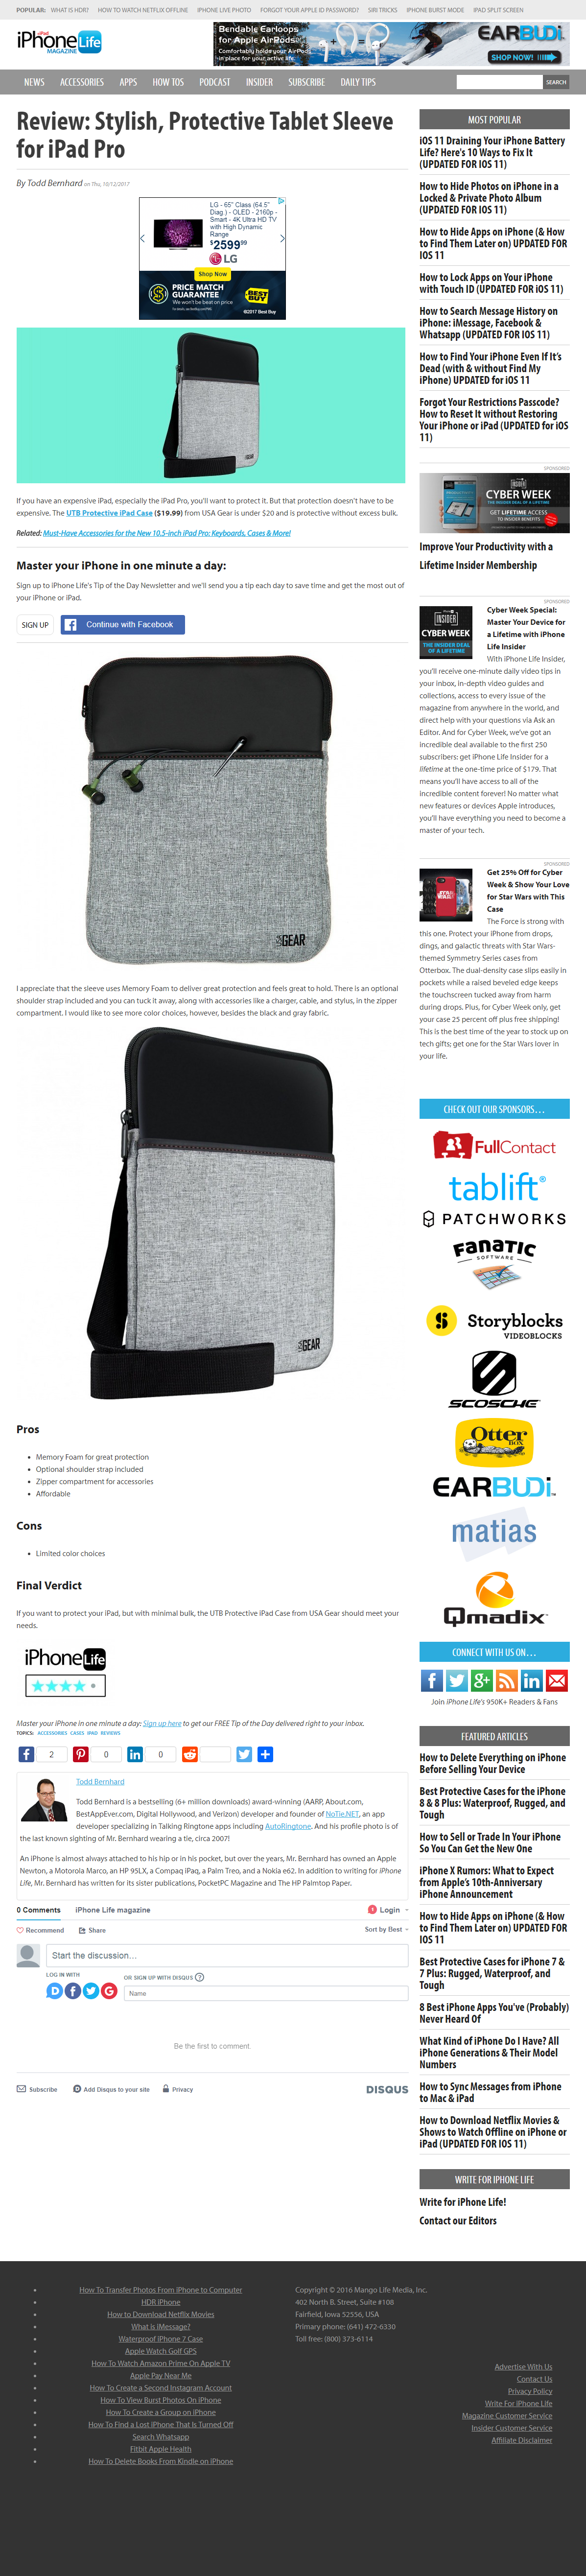 Review: Stylish, Protective Tablet Sleeve for iPad Pro